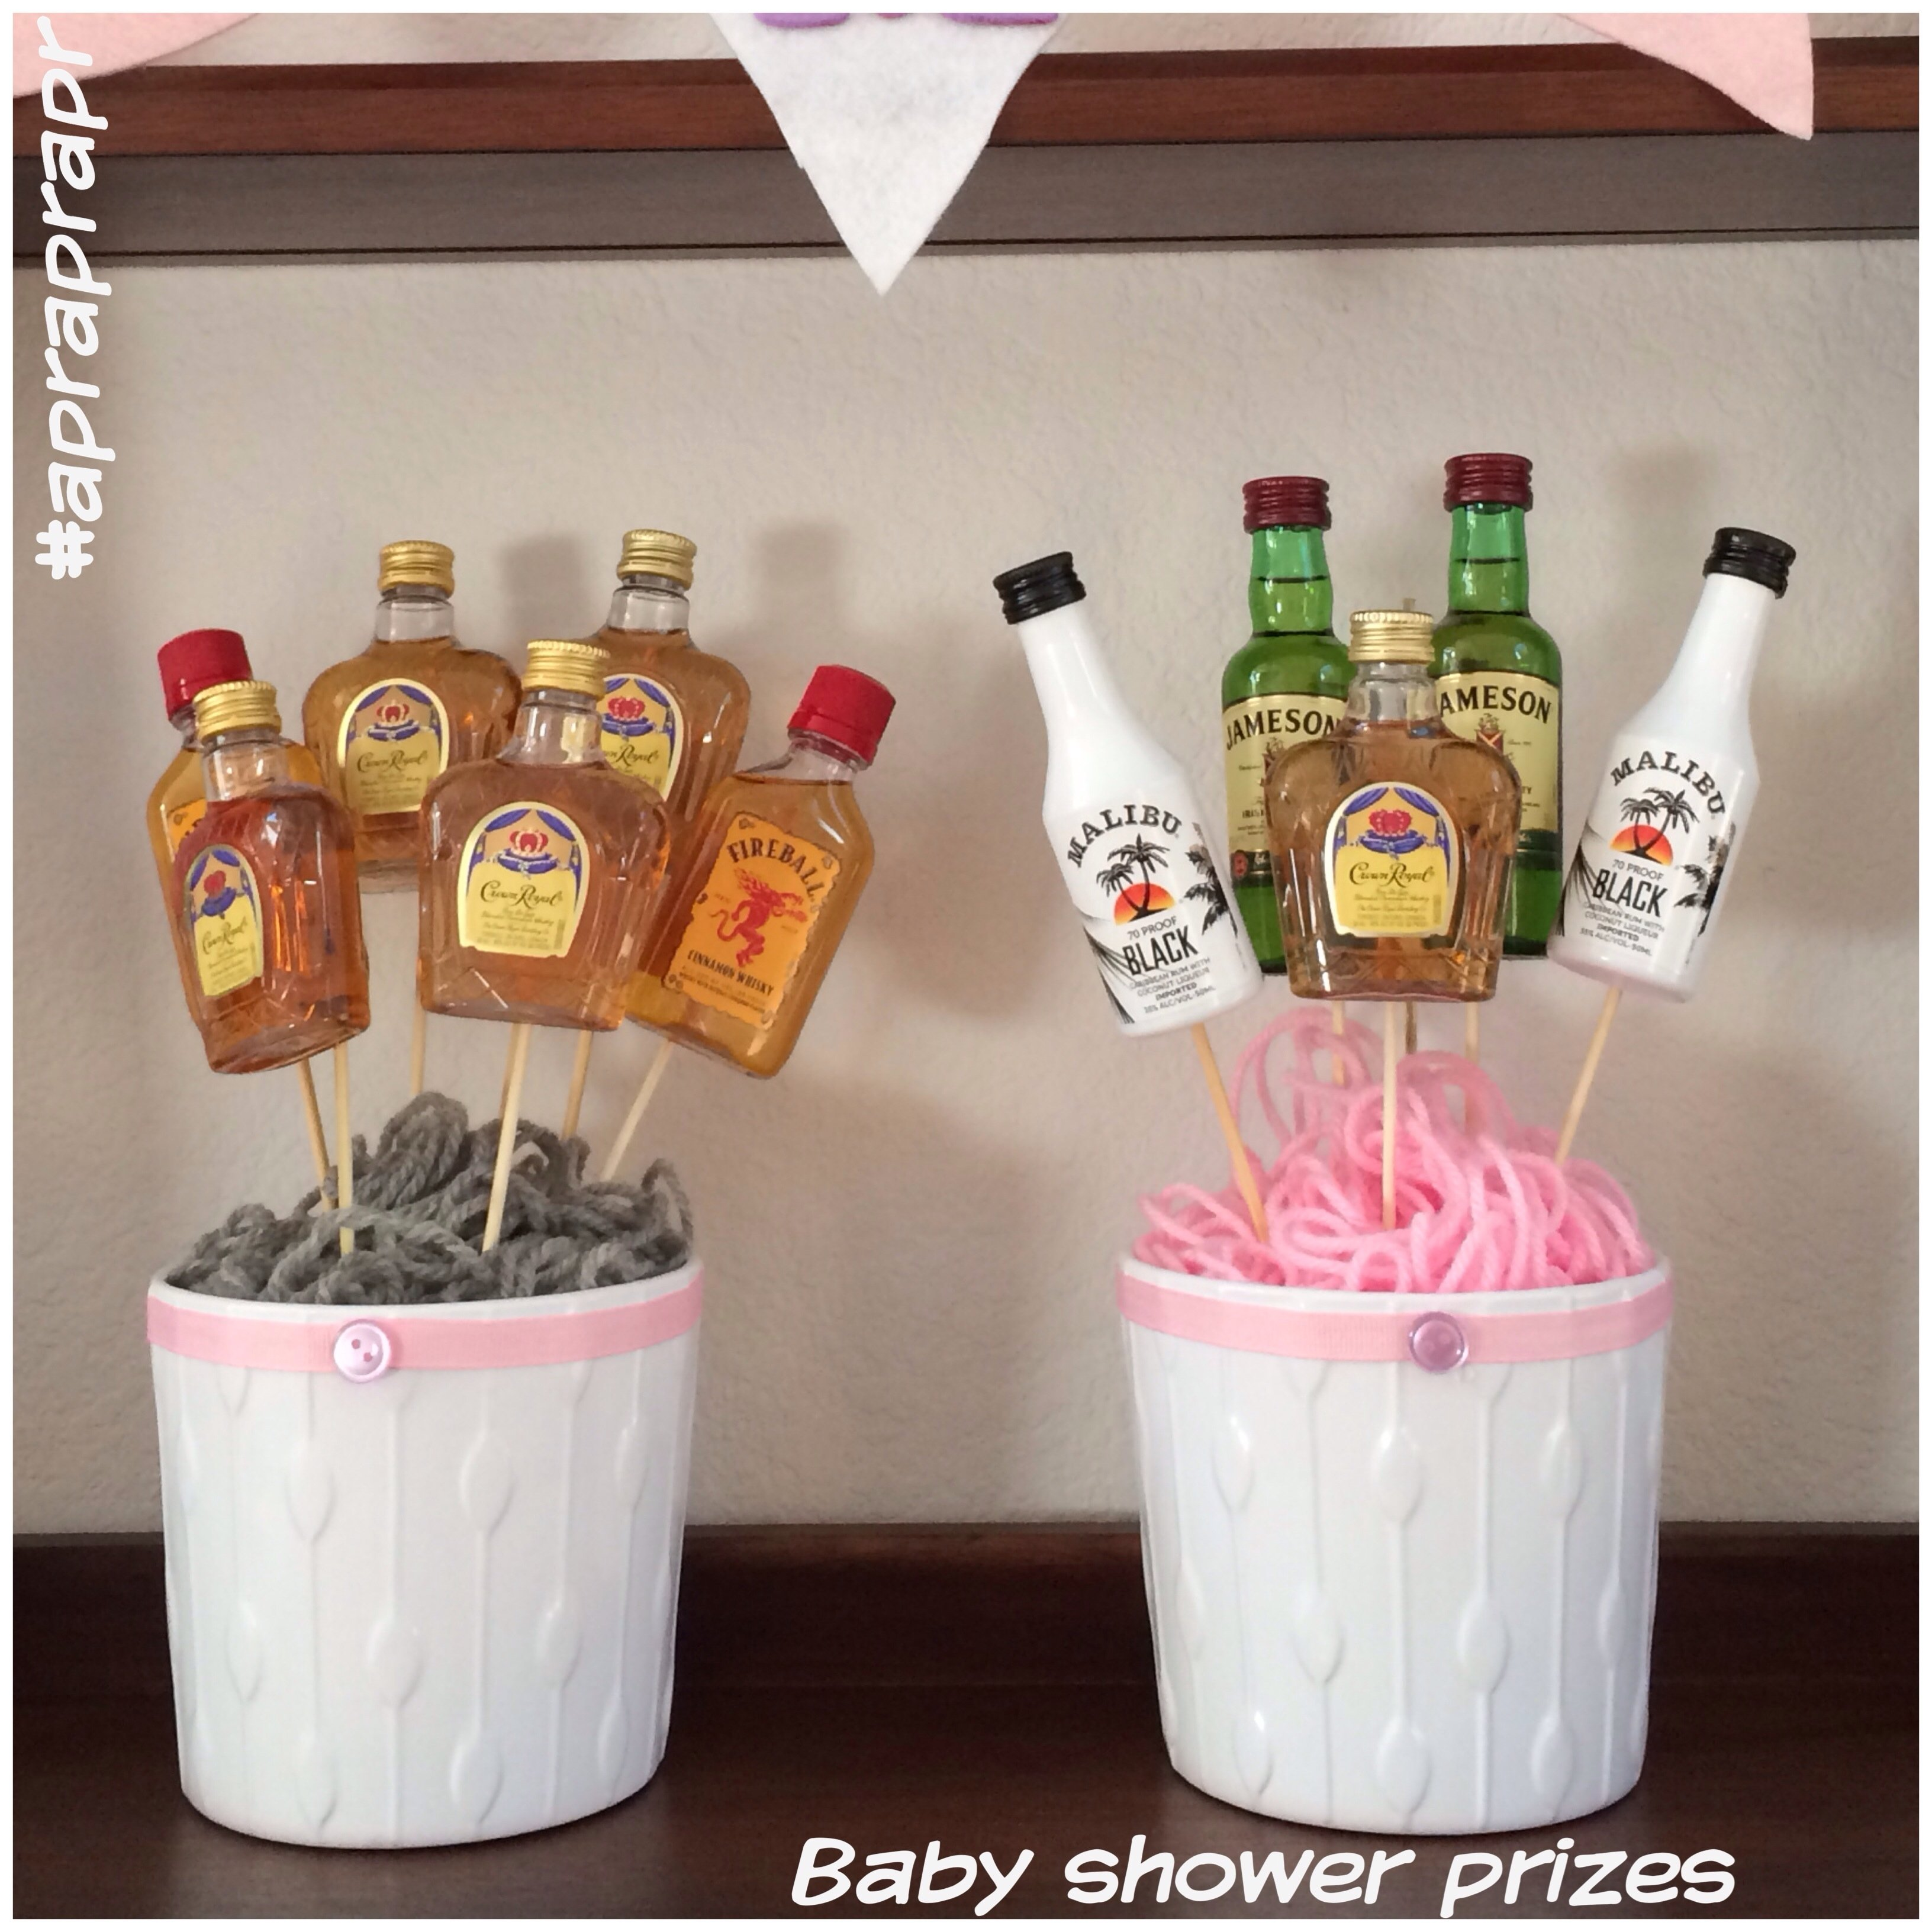 10 Most Popular Prize Ideas For Baby Shower ideas baby shower gamezes for coed giftze guys pregnancy basket 2021